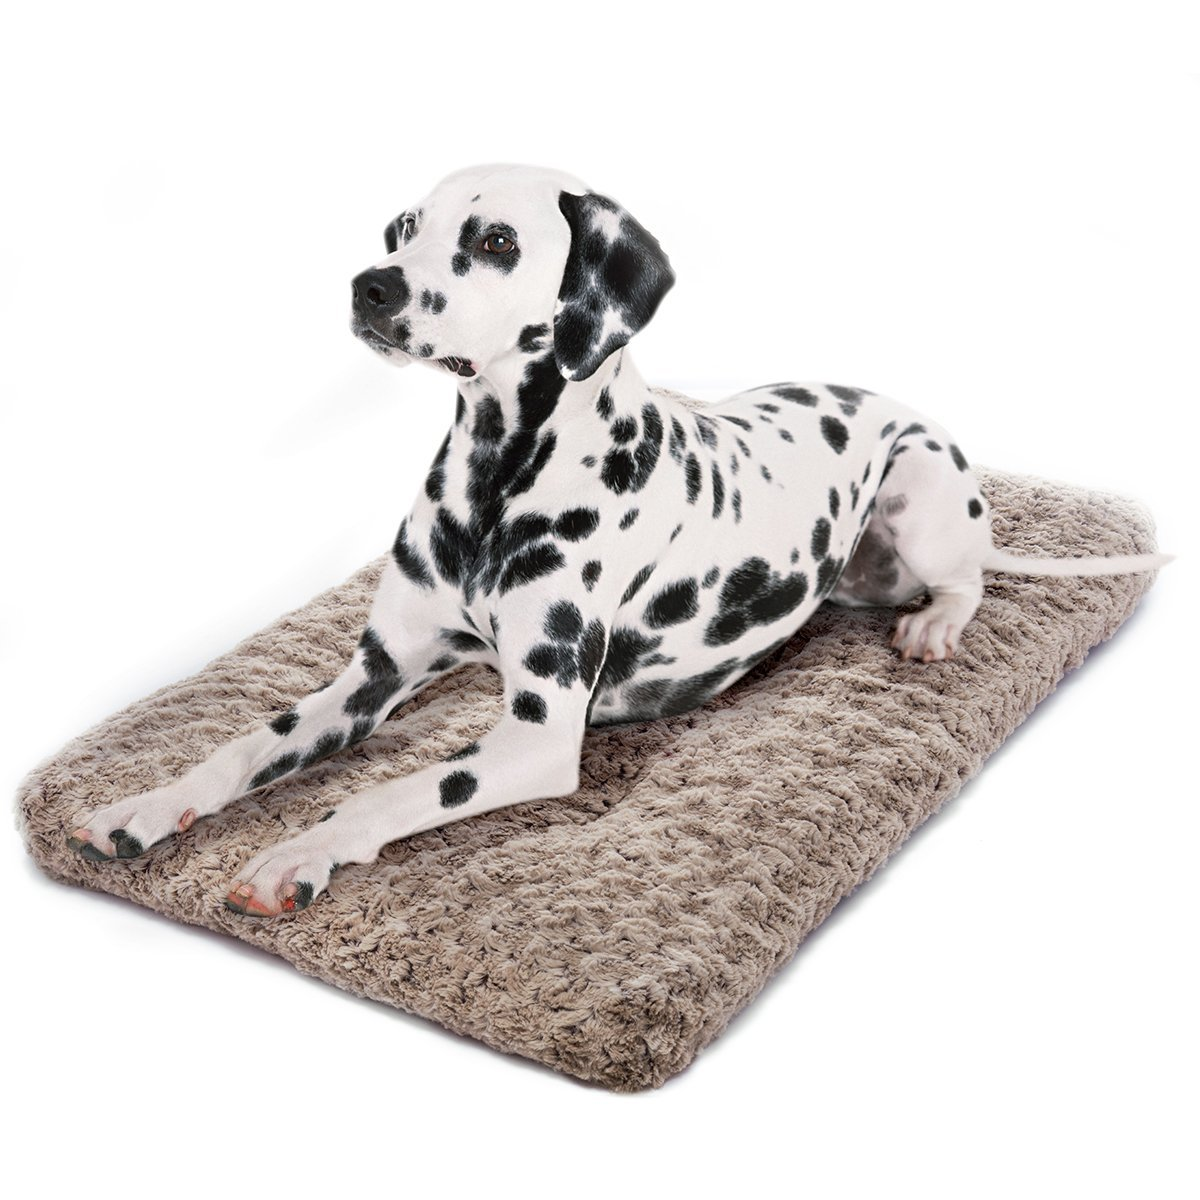 perpets Dog Bed Home Pet Pad Ultra Soft Crate Washable Mat for Dogs and Cats Beds (36-inch)